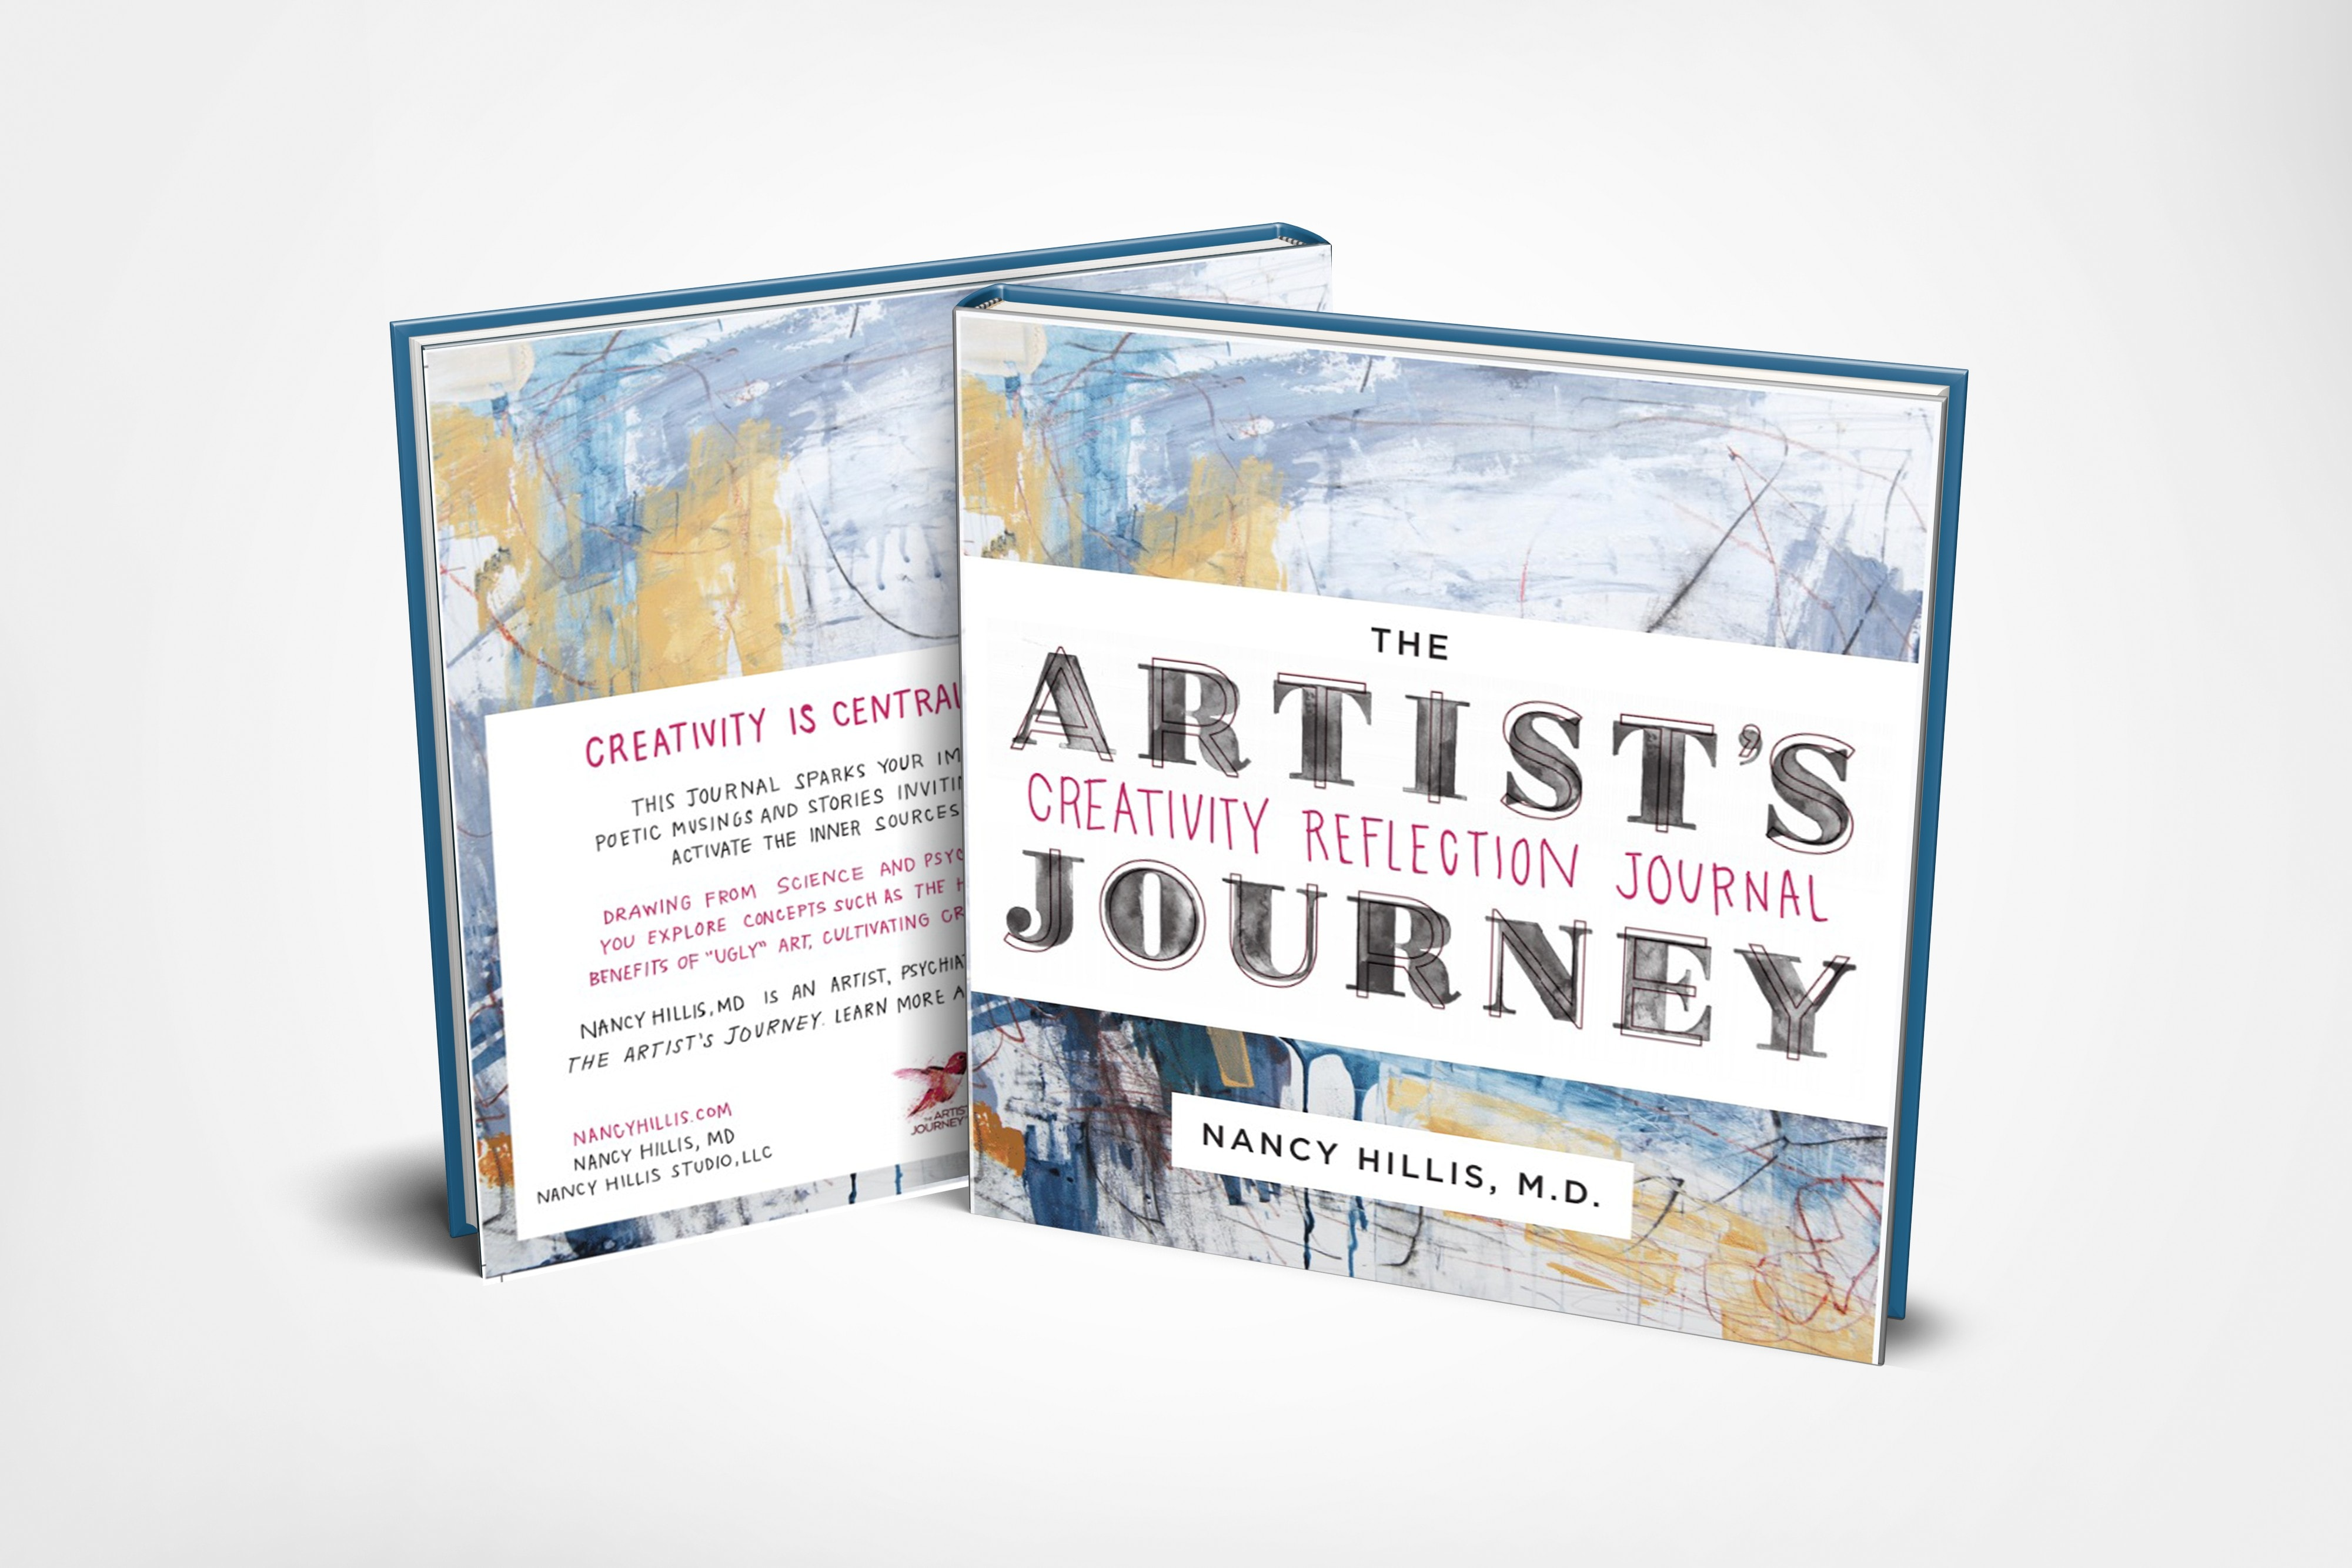 The Artist's Journey: Creativity Reflection Journal. A playfully illustrated self-help journal crafted to activate the inner sources of your creativity.